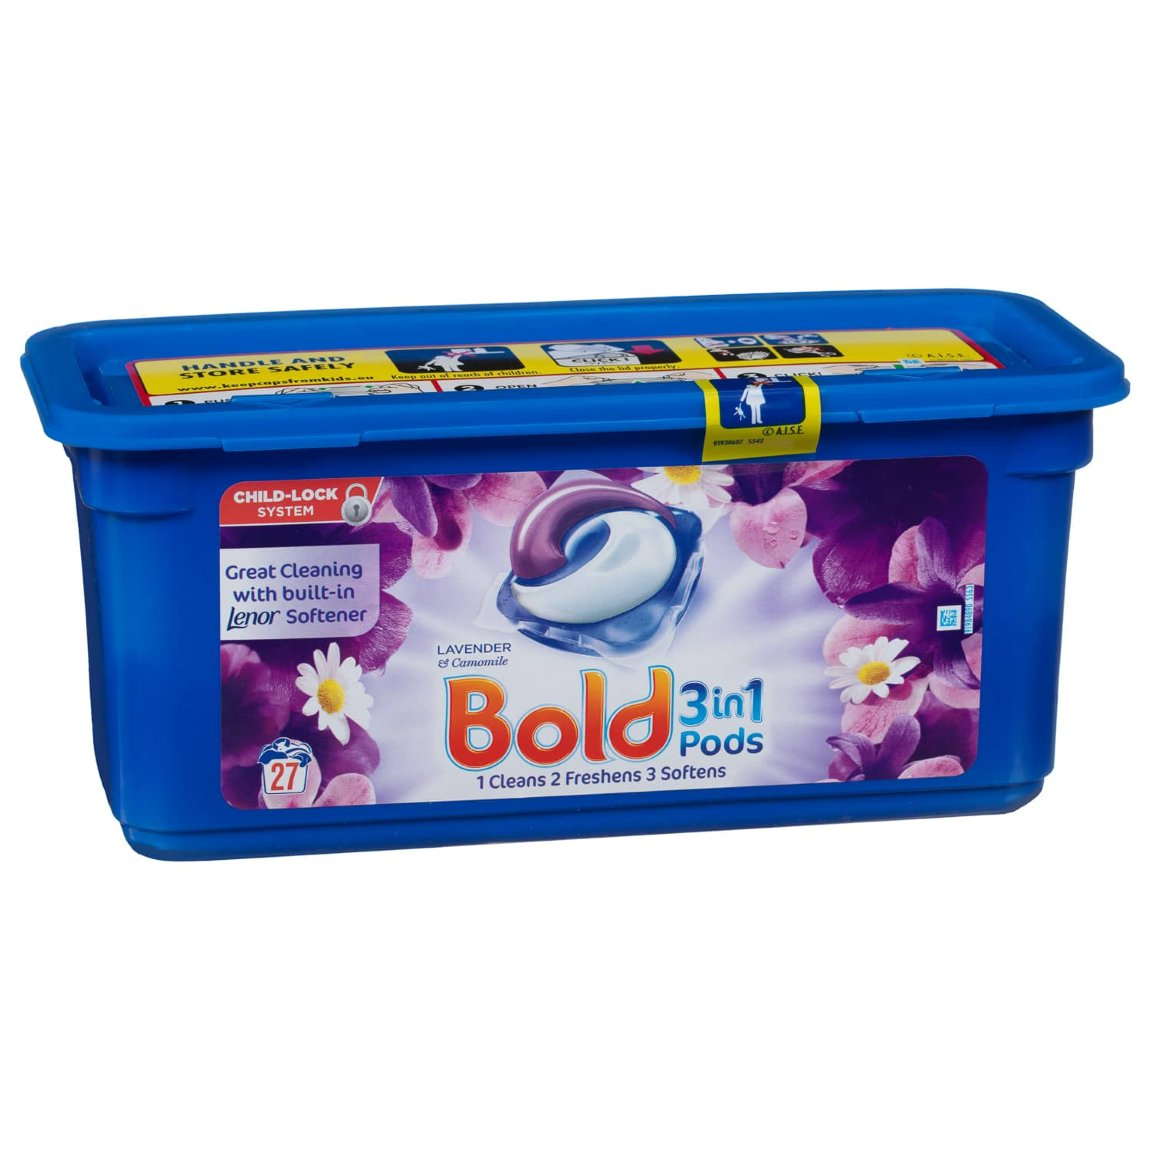 Bold 3-in-1 Pods 27 Washes - Lavender